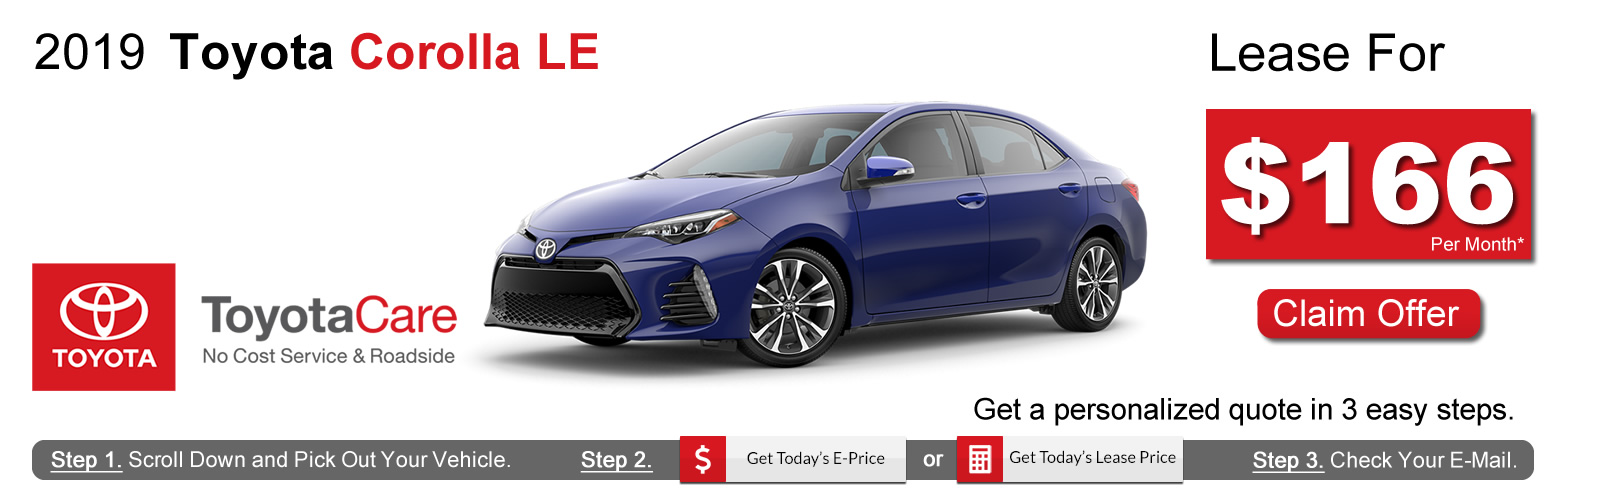 2019 Toyota Corolla Lease Deals near Boston, MA